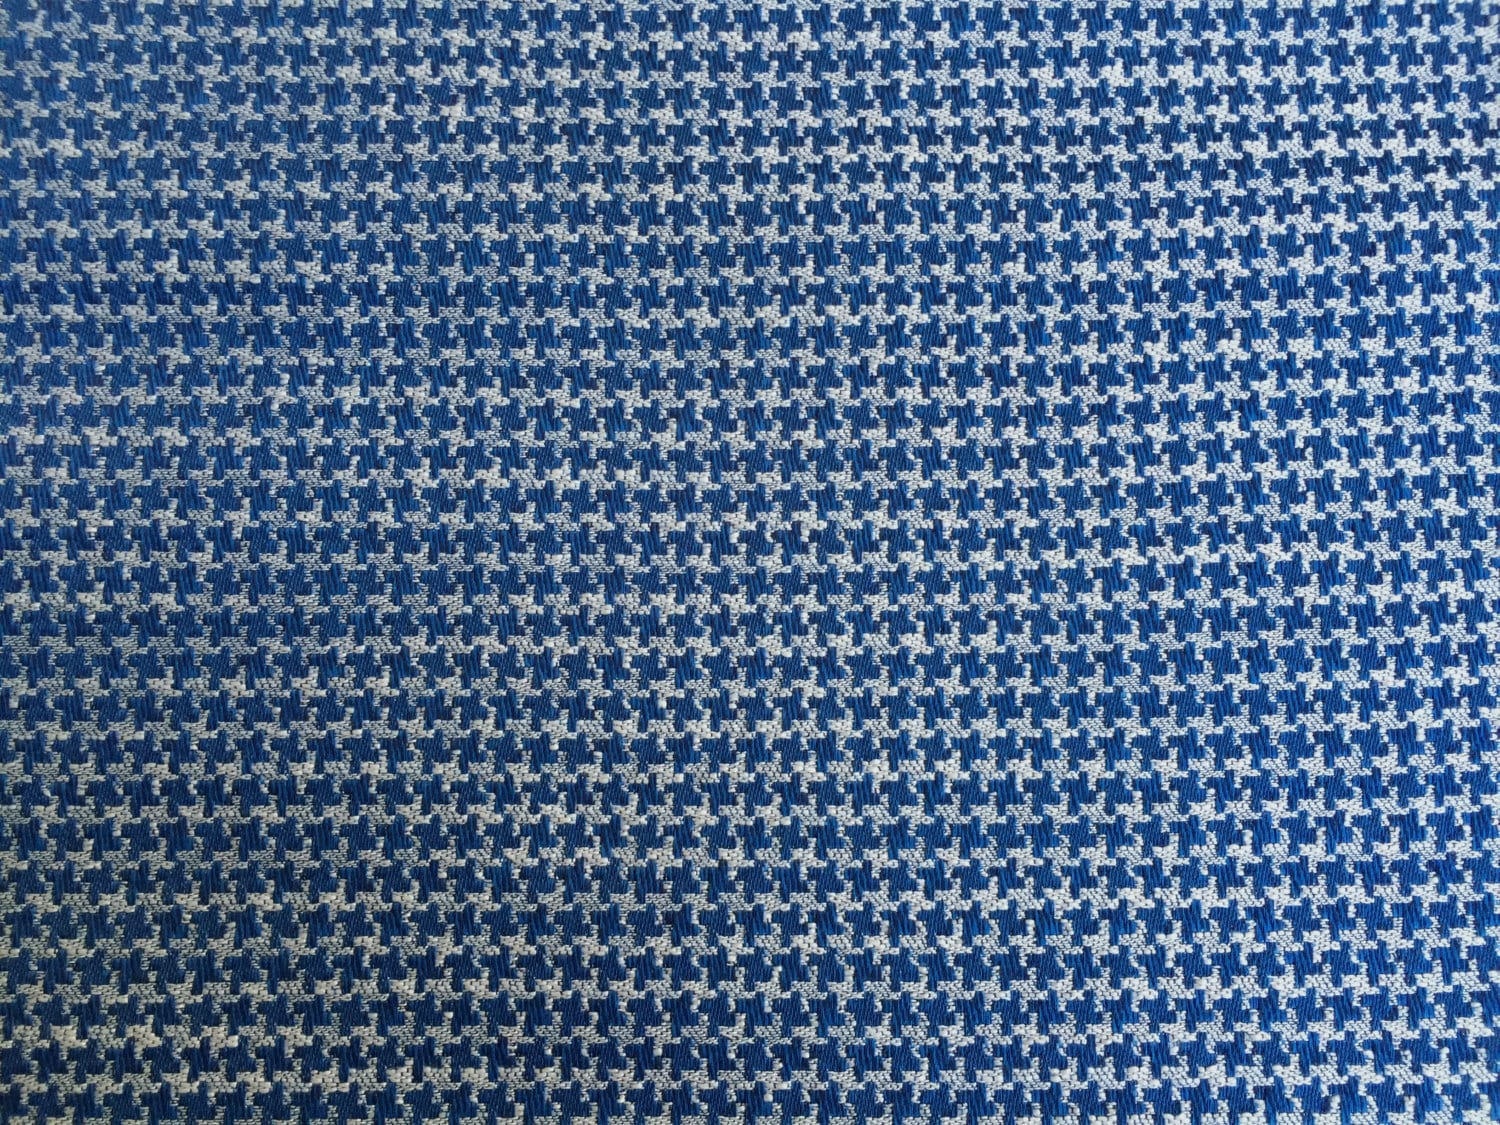 blue and white houndstooth eames upholstery fabric 40 by 59 home decor from menageriemall on. Black Bedroom Furniture Sets. Home Design Ideas